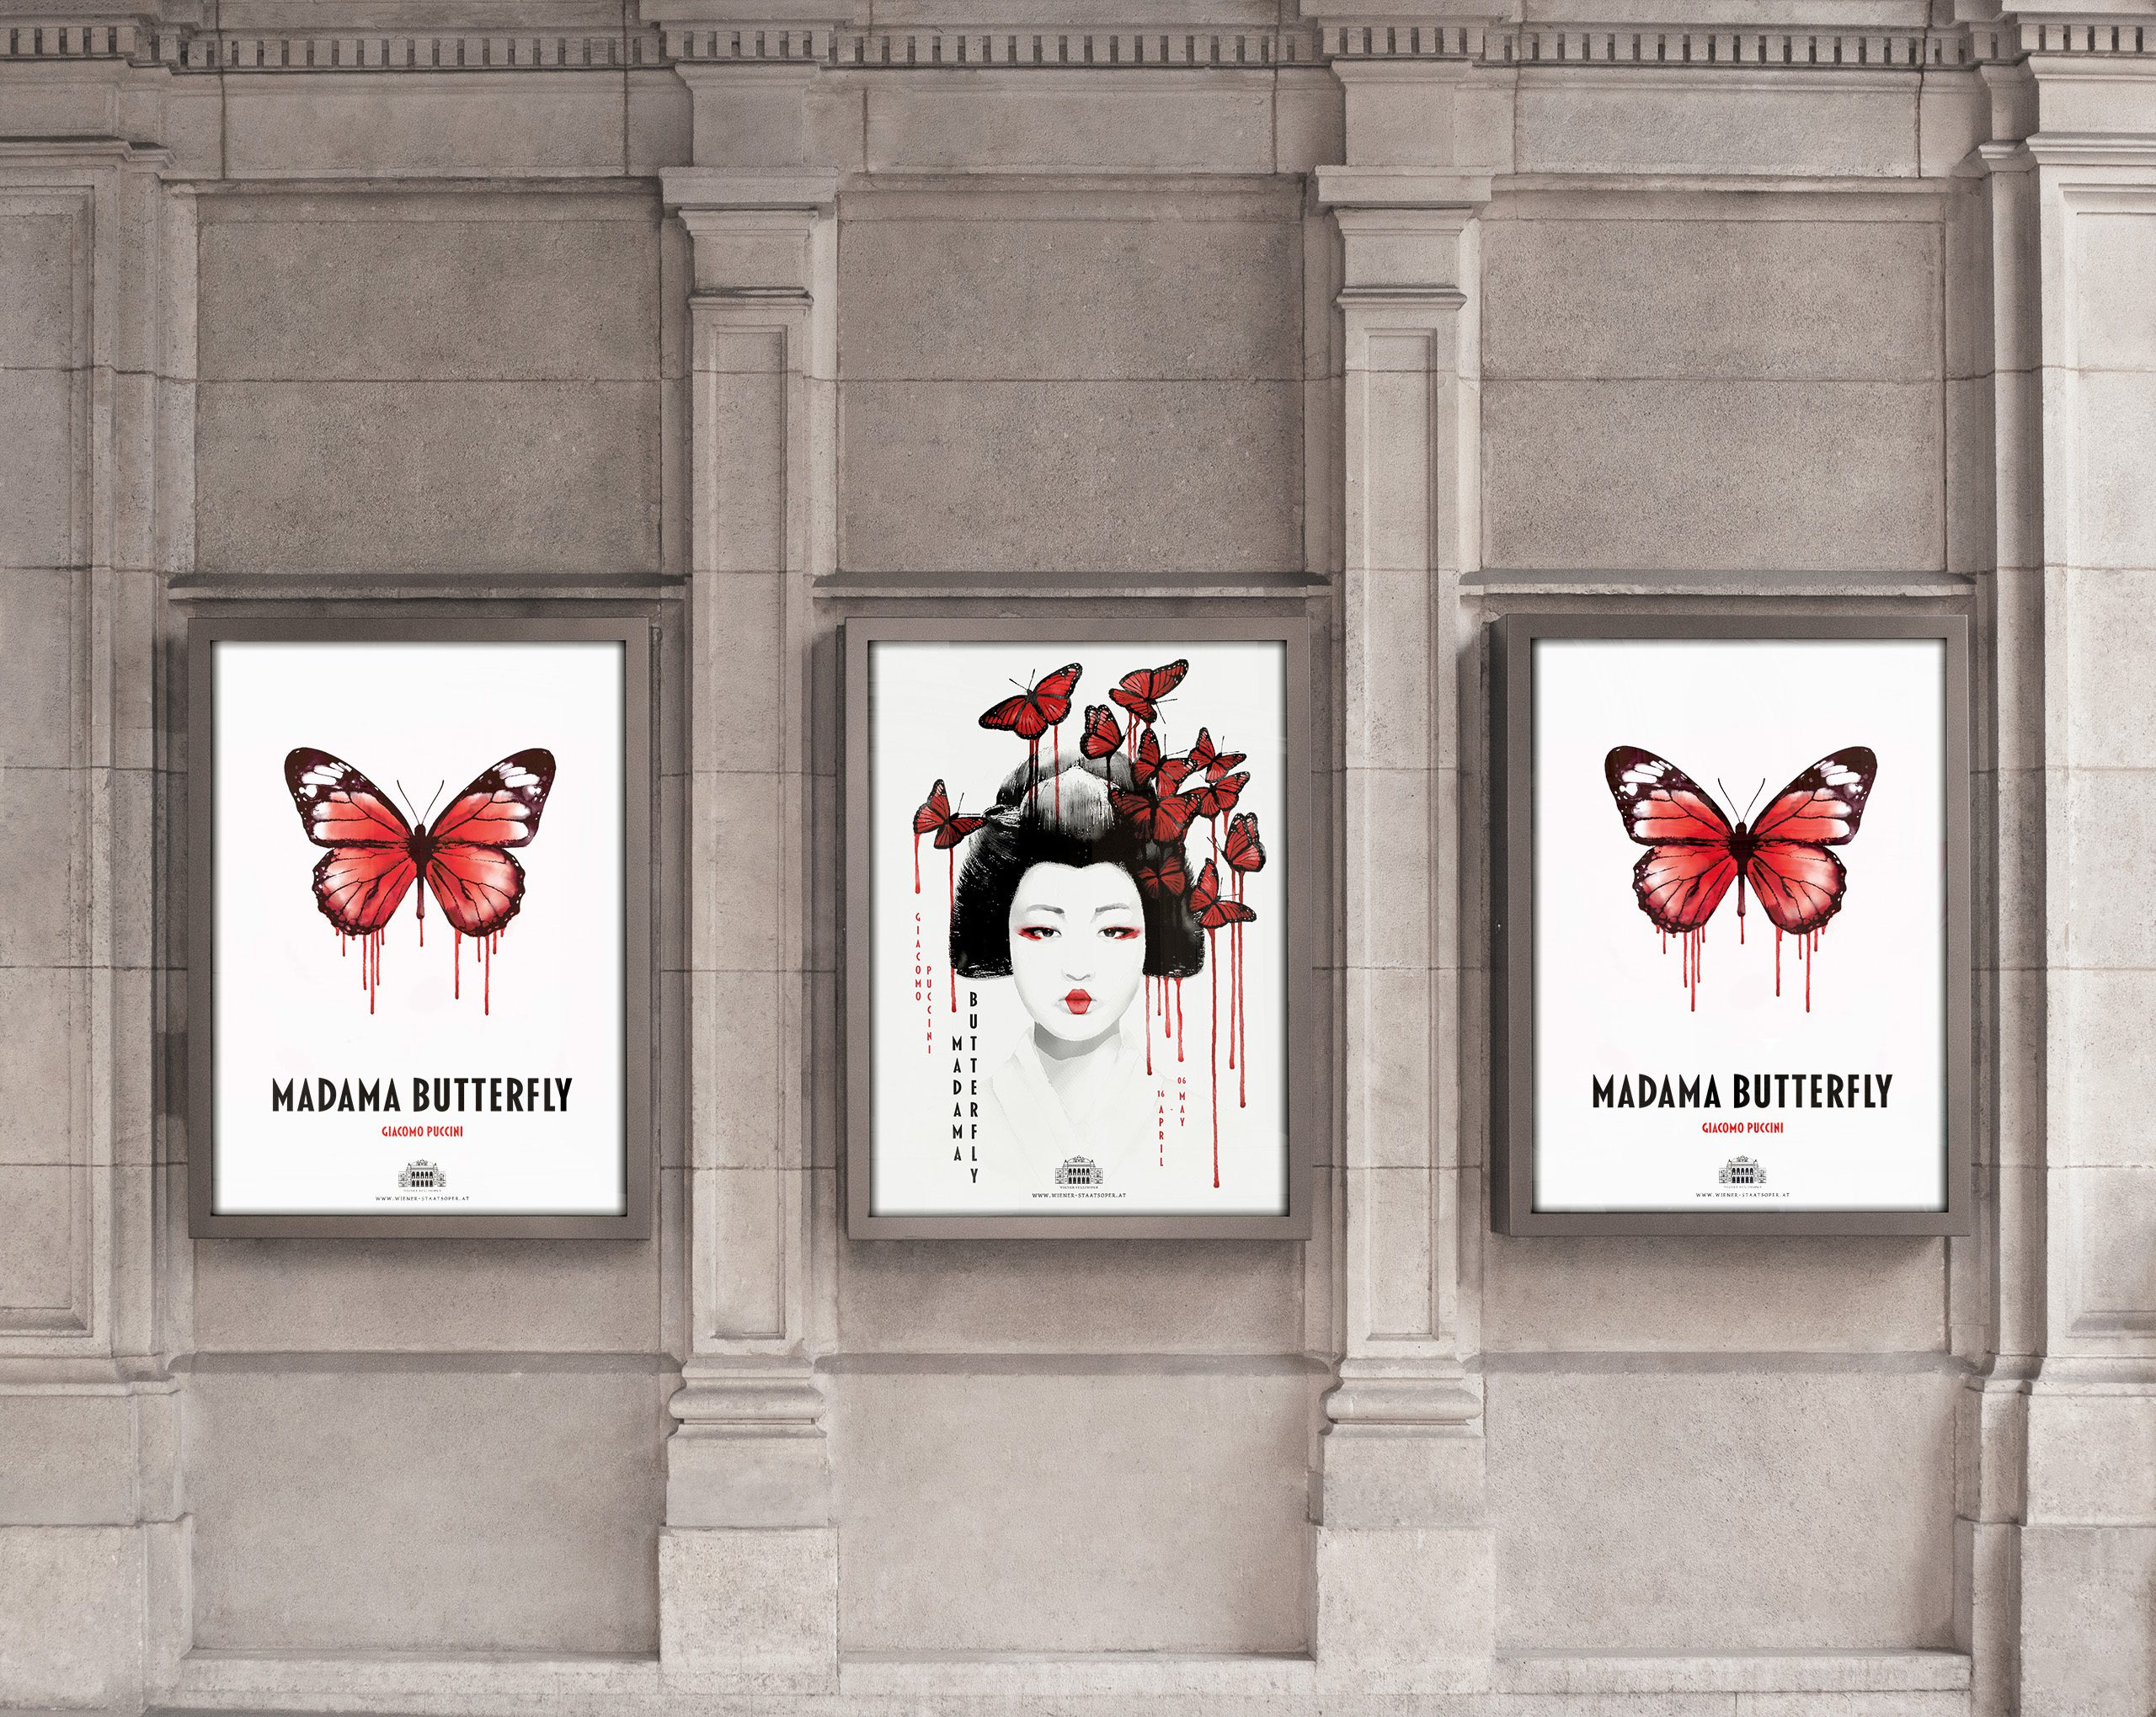 madama butterfly poster display